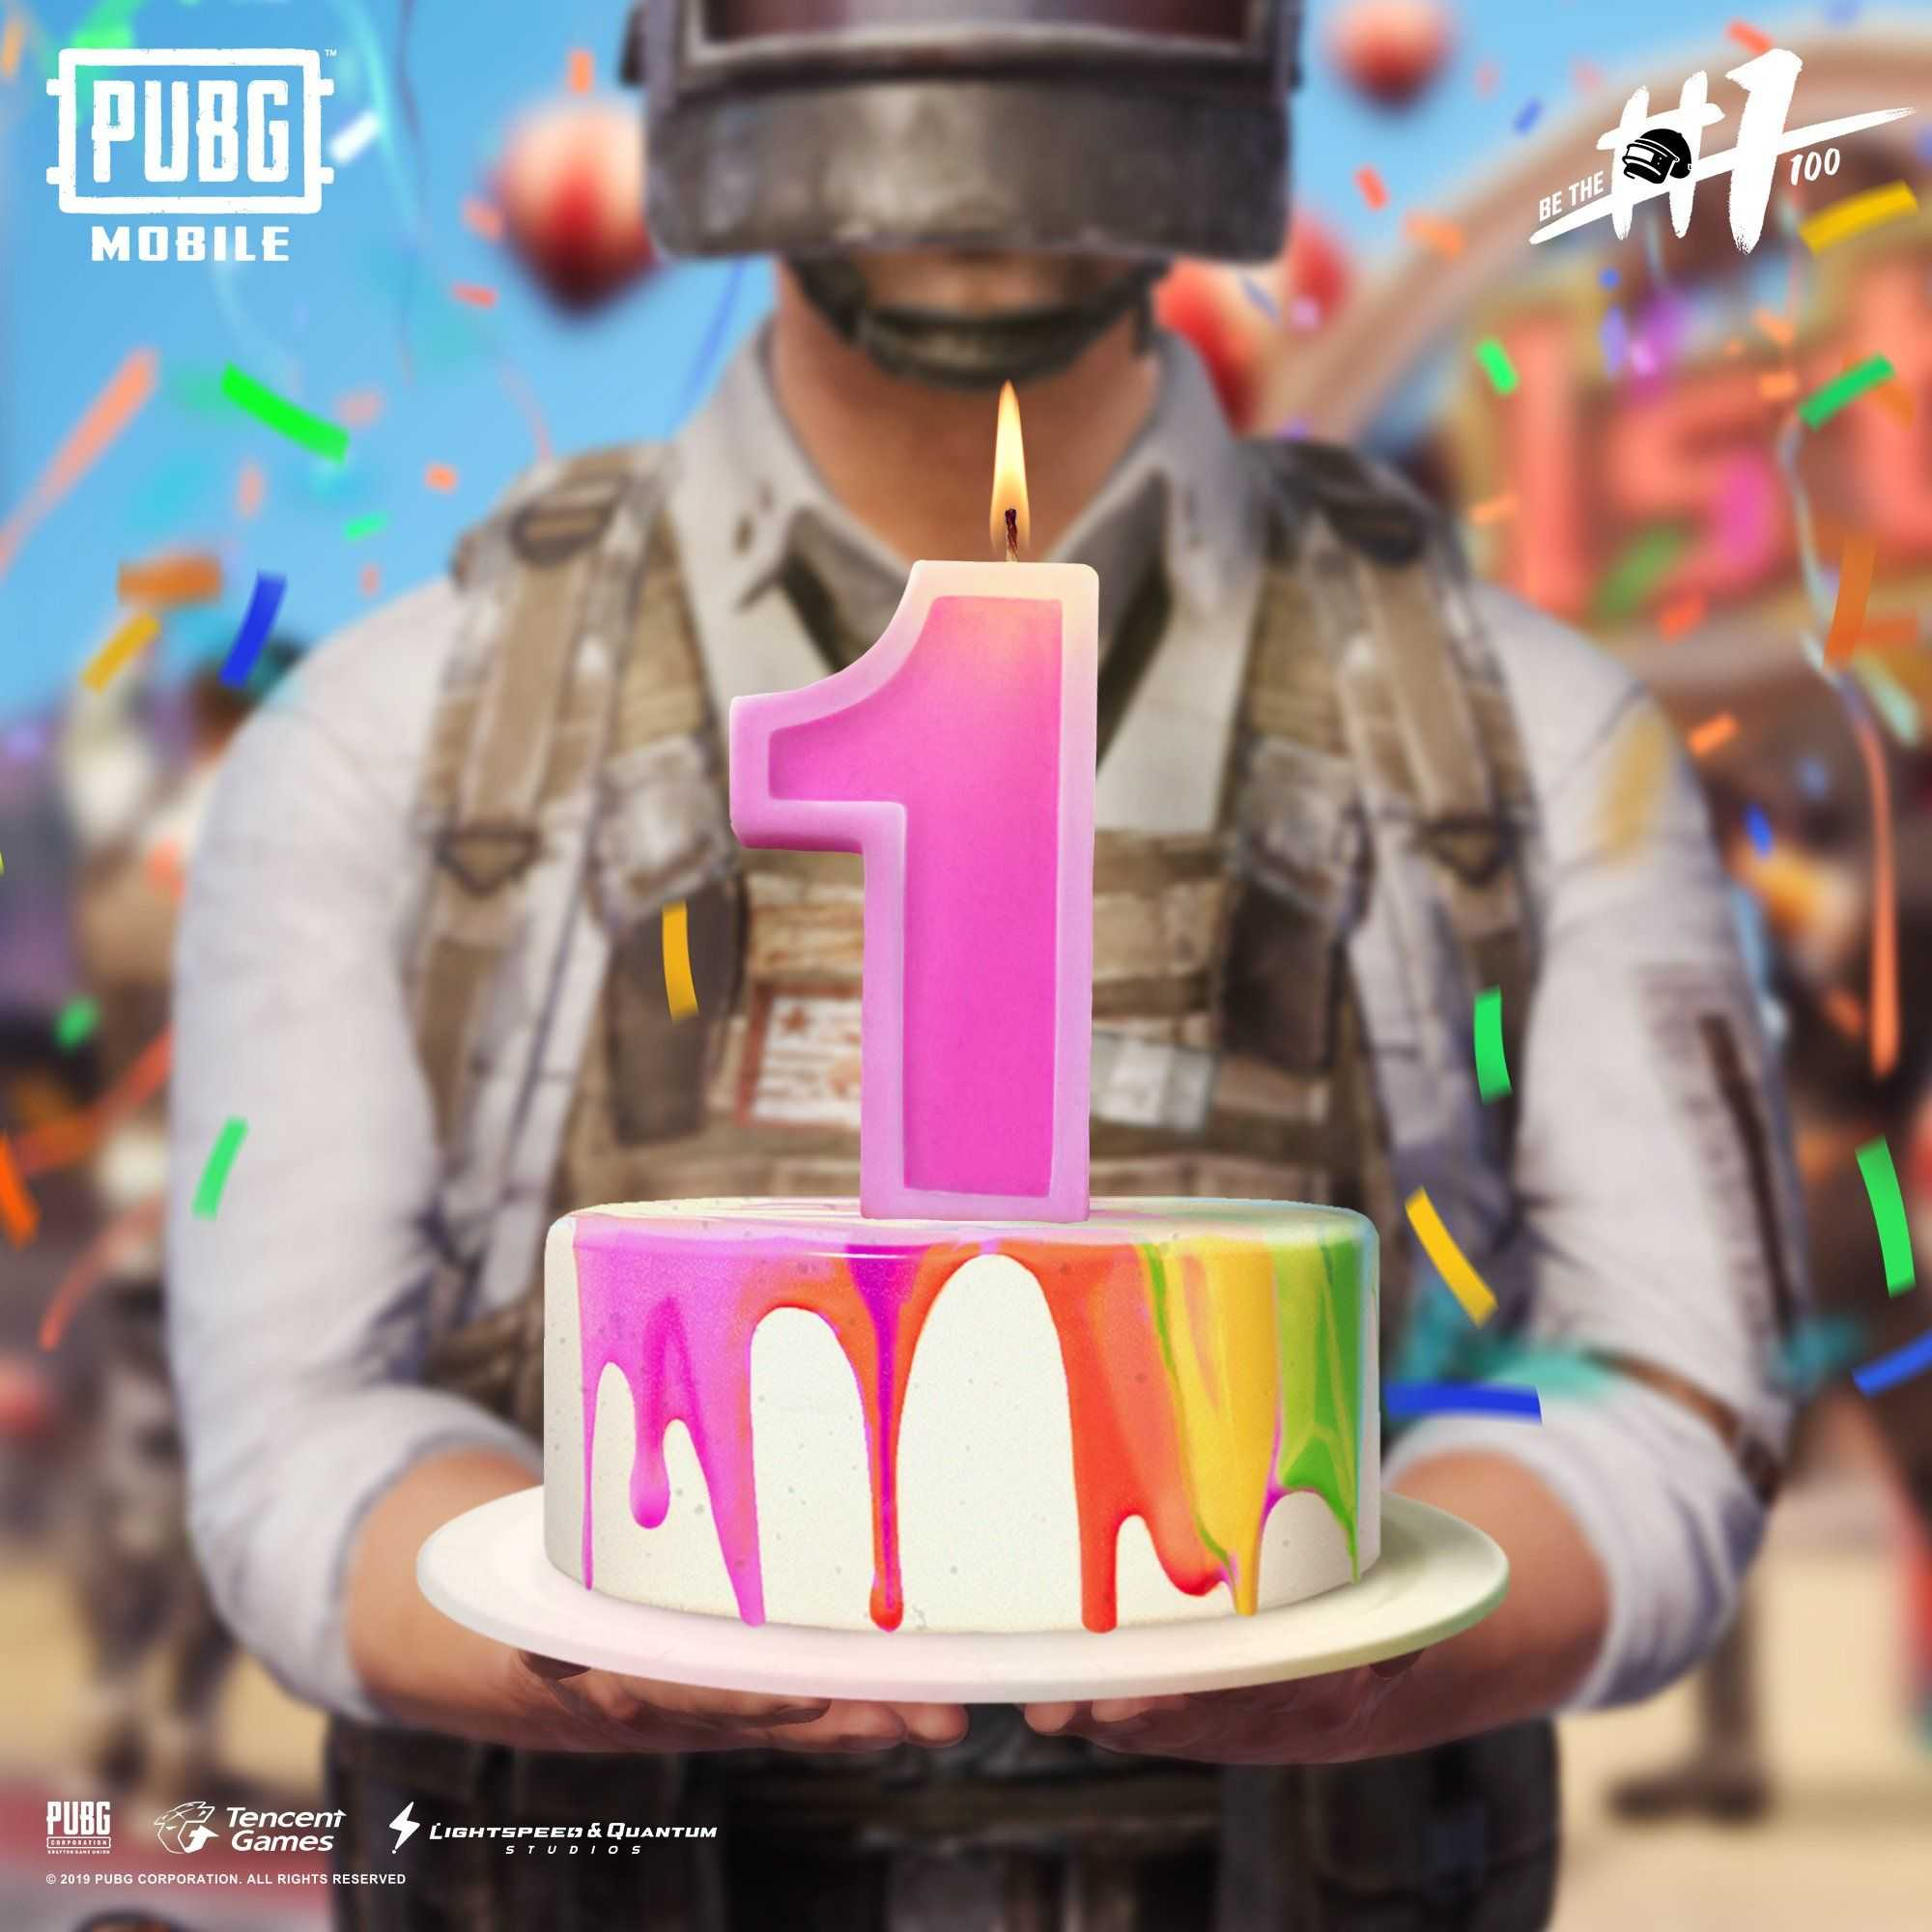 On the Holi, Pubg Mobile completes a year